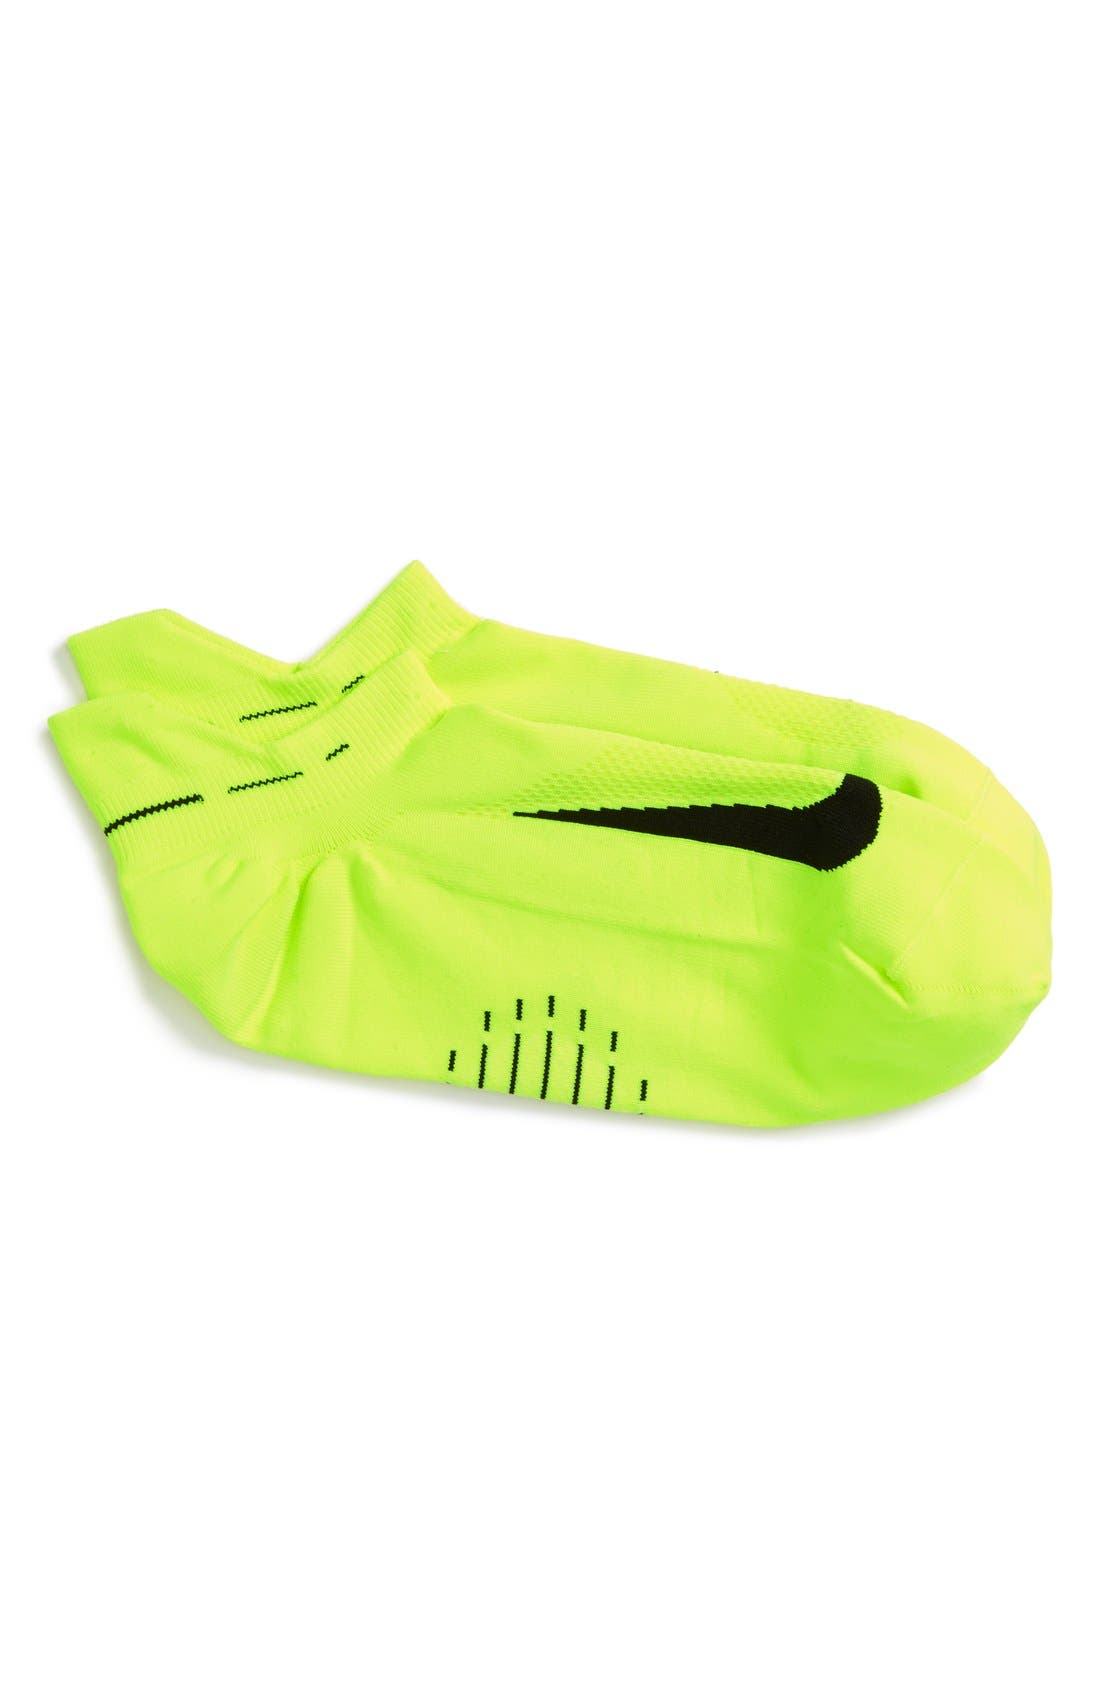 Nike 'Elite' Lightweight No-Show Tab Running Socks